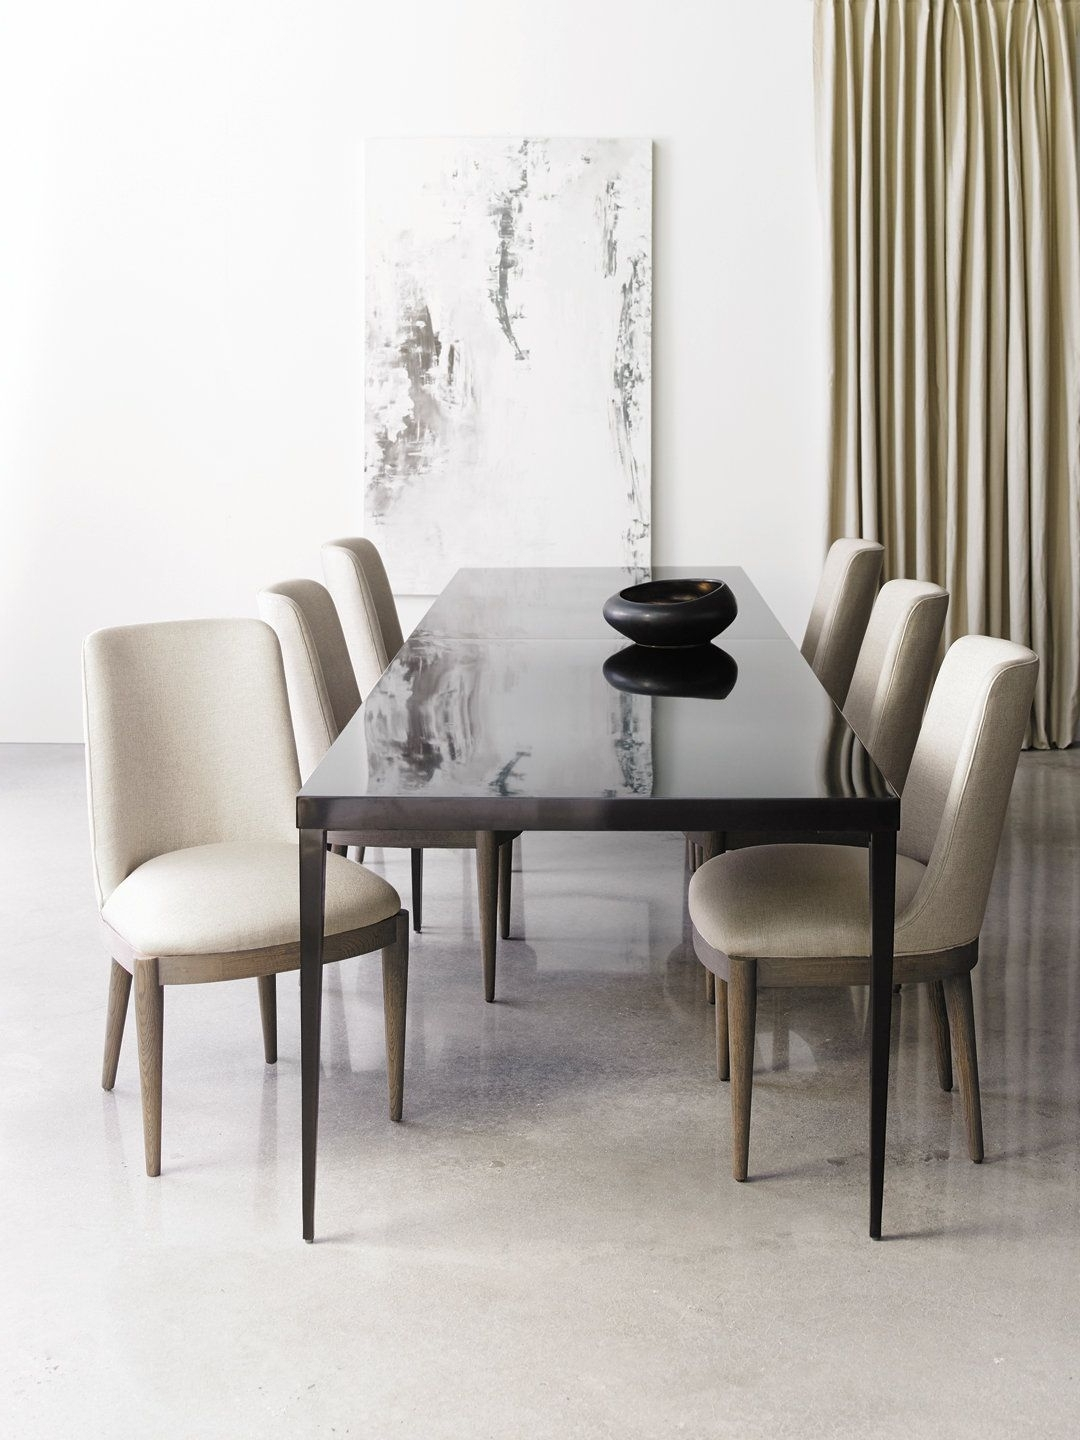 2018 Metro Dining Tables In Rectangular Modern Metro Dining Table (View 2 of 25)